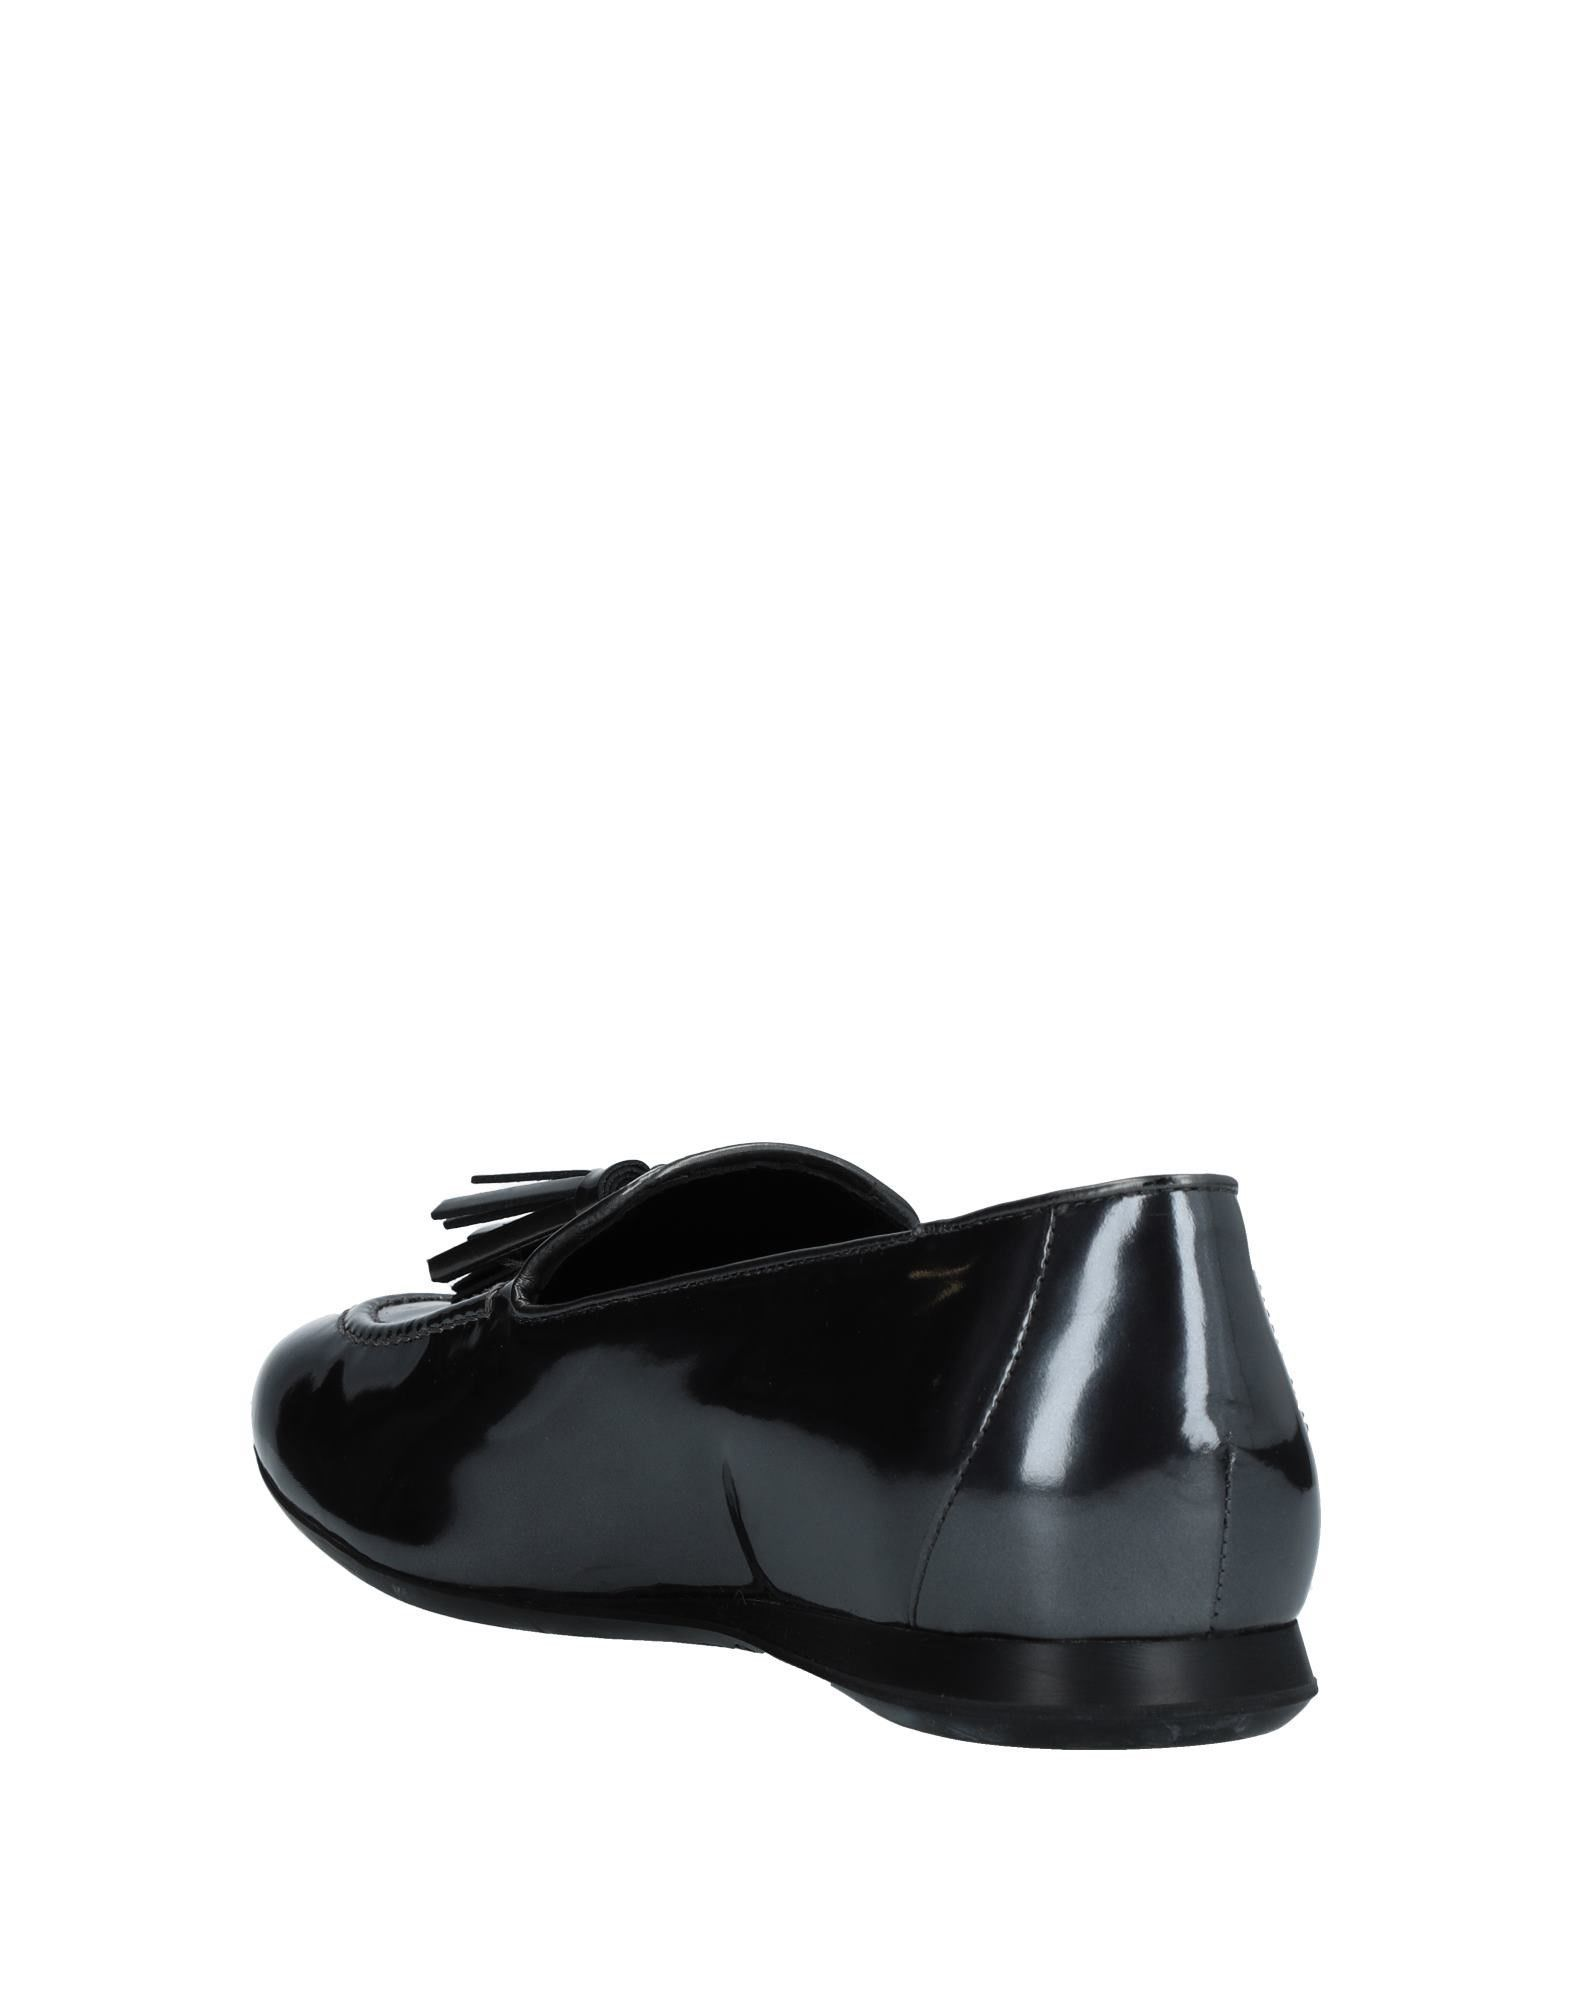 Hogan Lead Leather Loafers